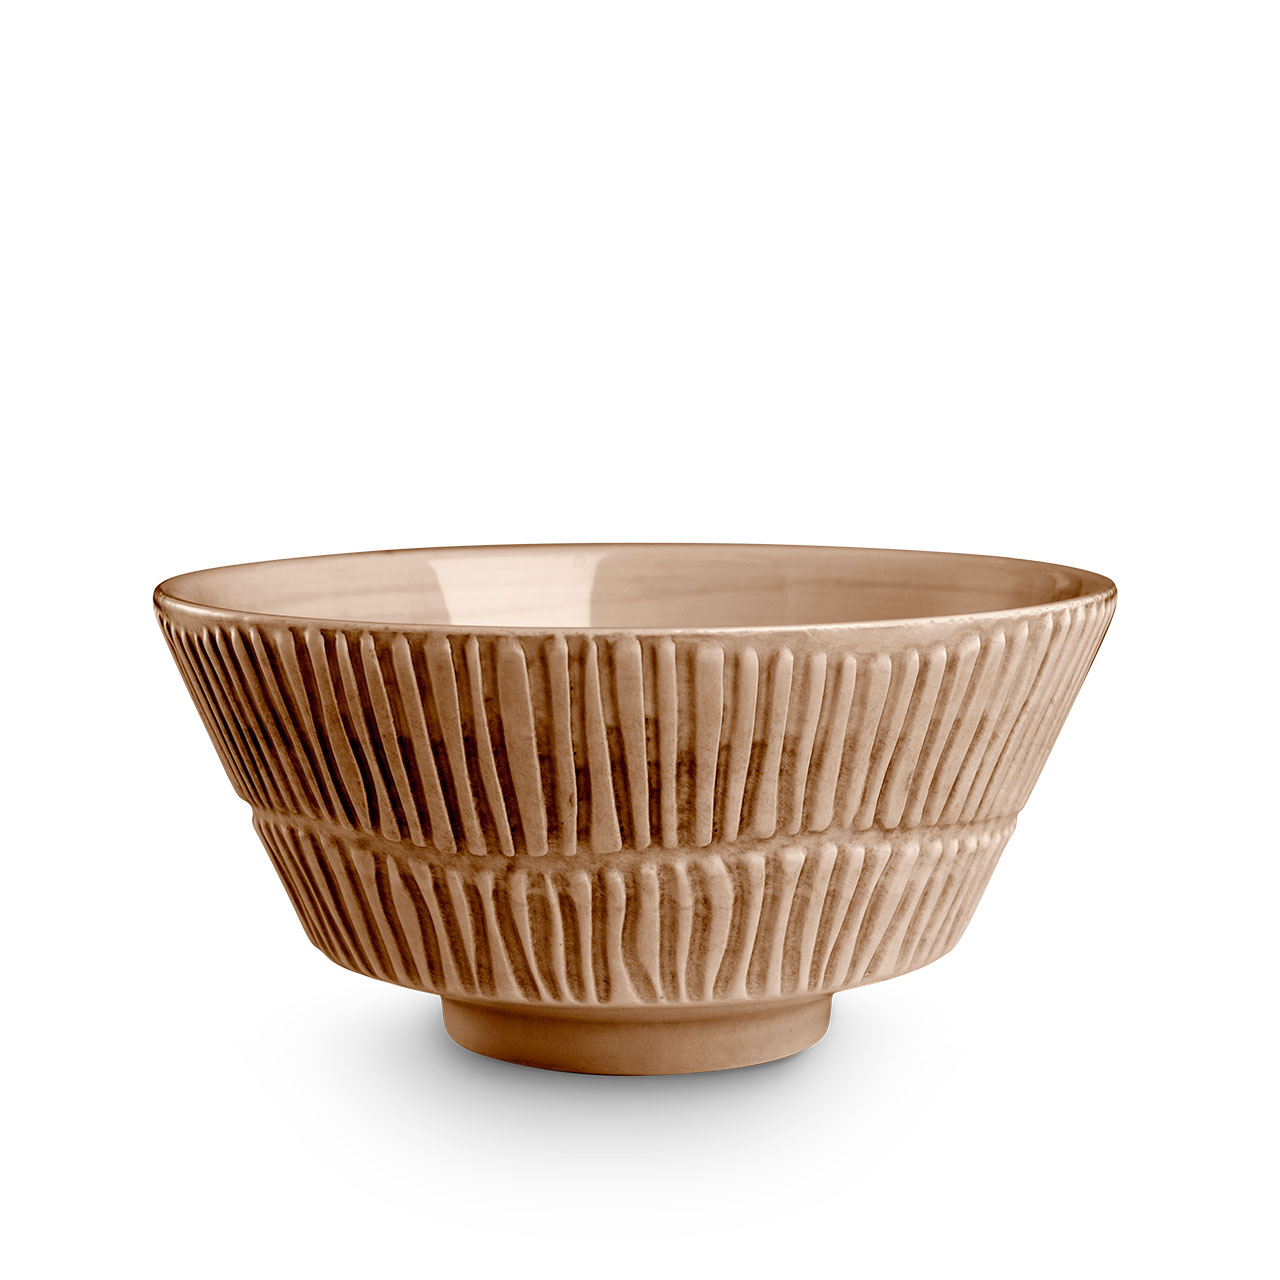 Stripes Cinnamon bowl. © Mateus Ceramics, 2020.